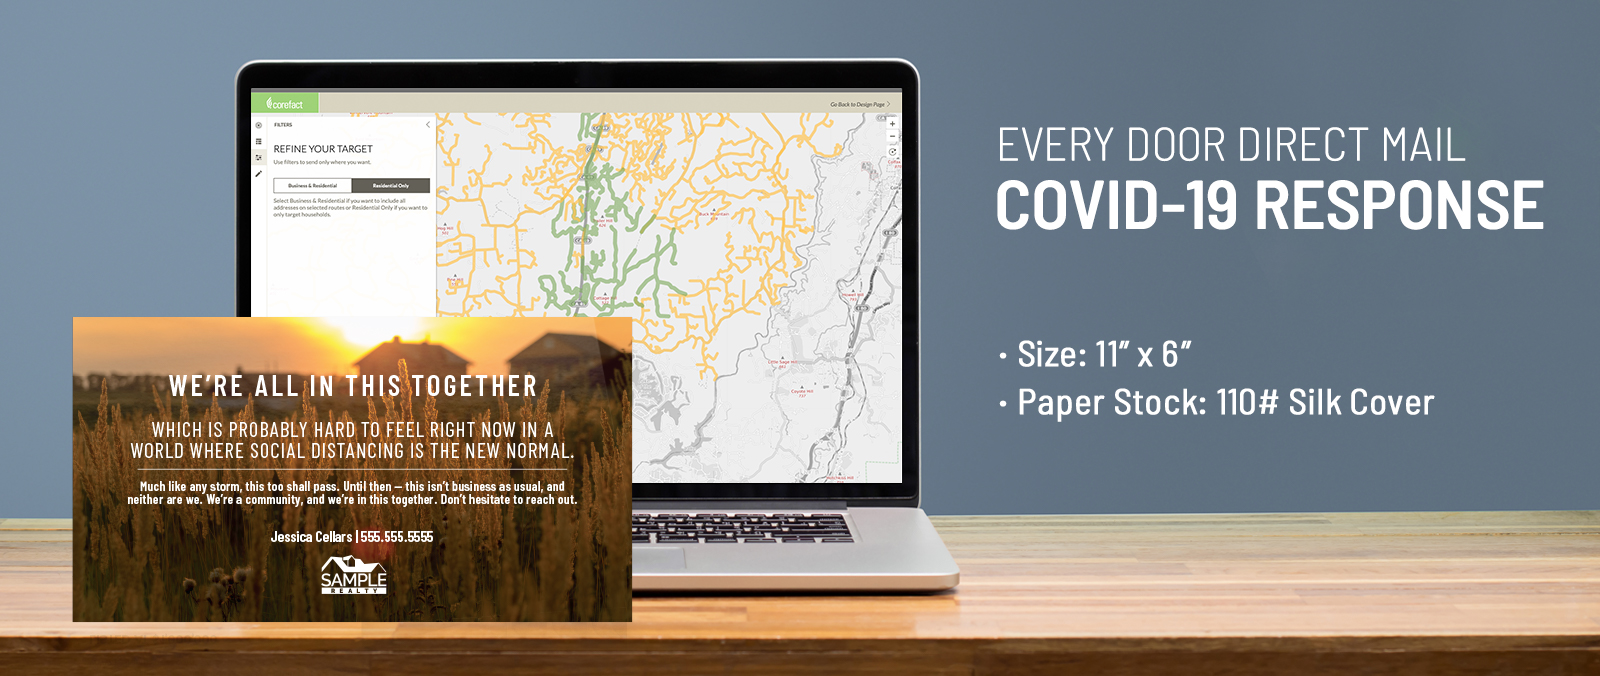 Every Door Direct Mail - COVID-19 Response Postcards